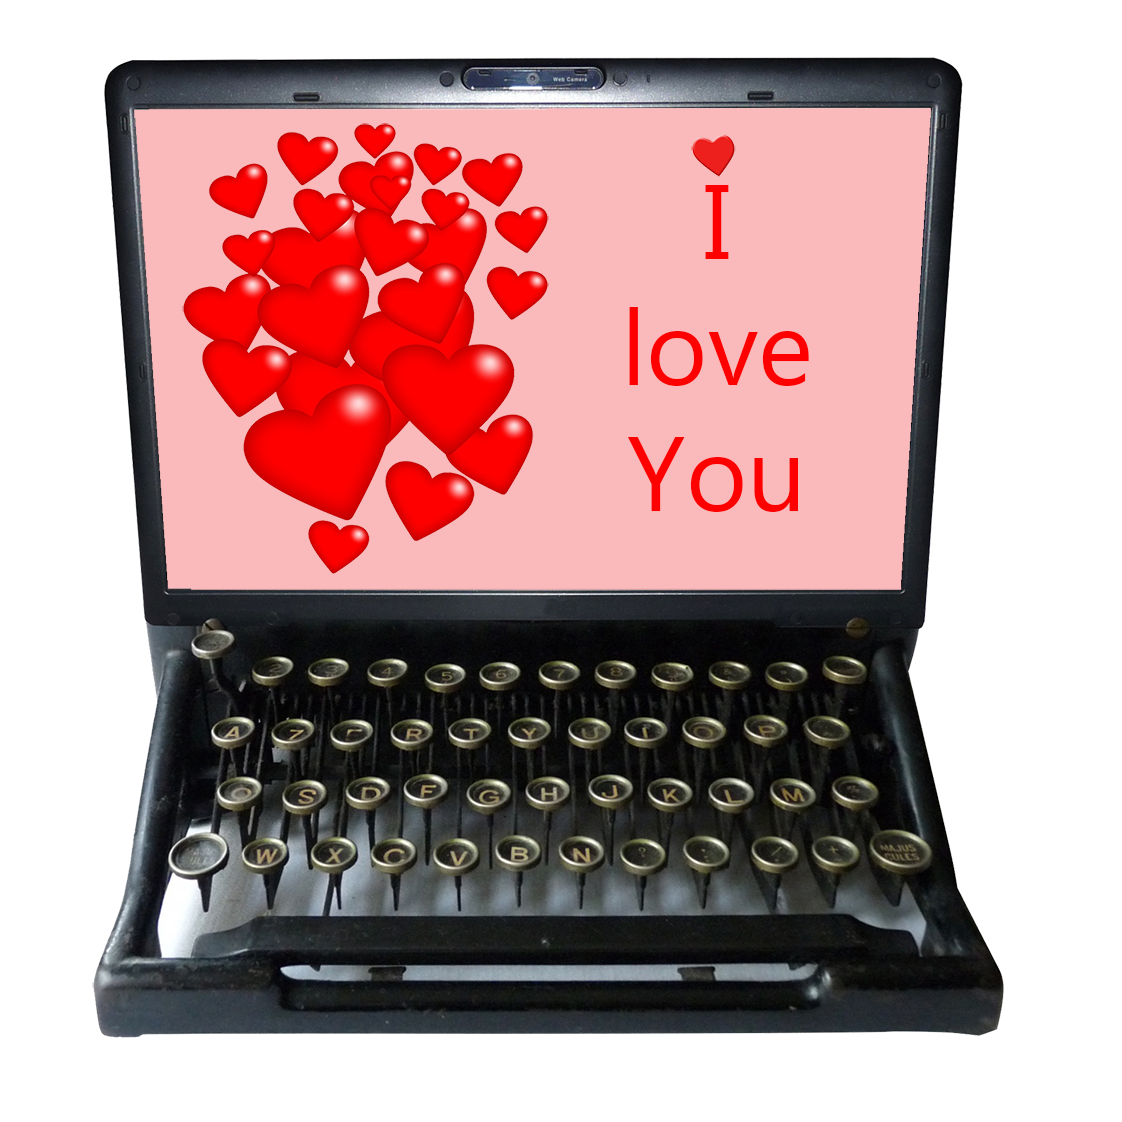 old typewriter and hearts I love you